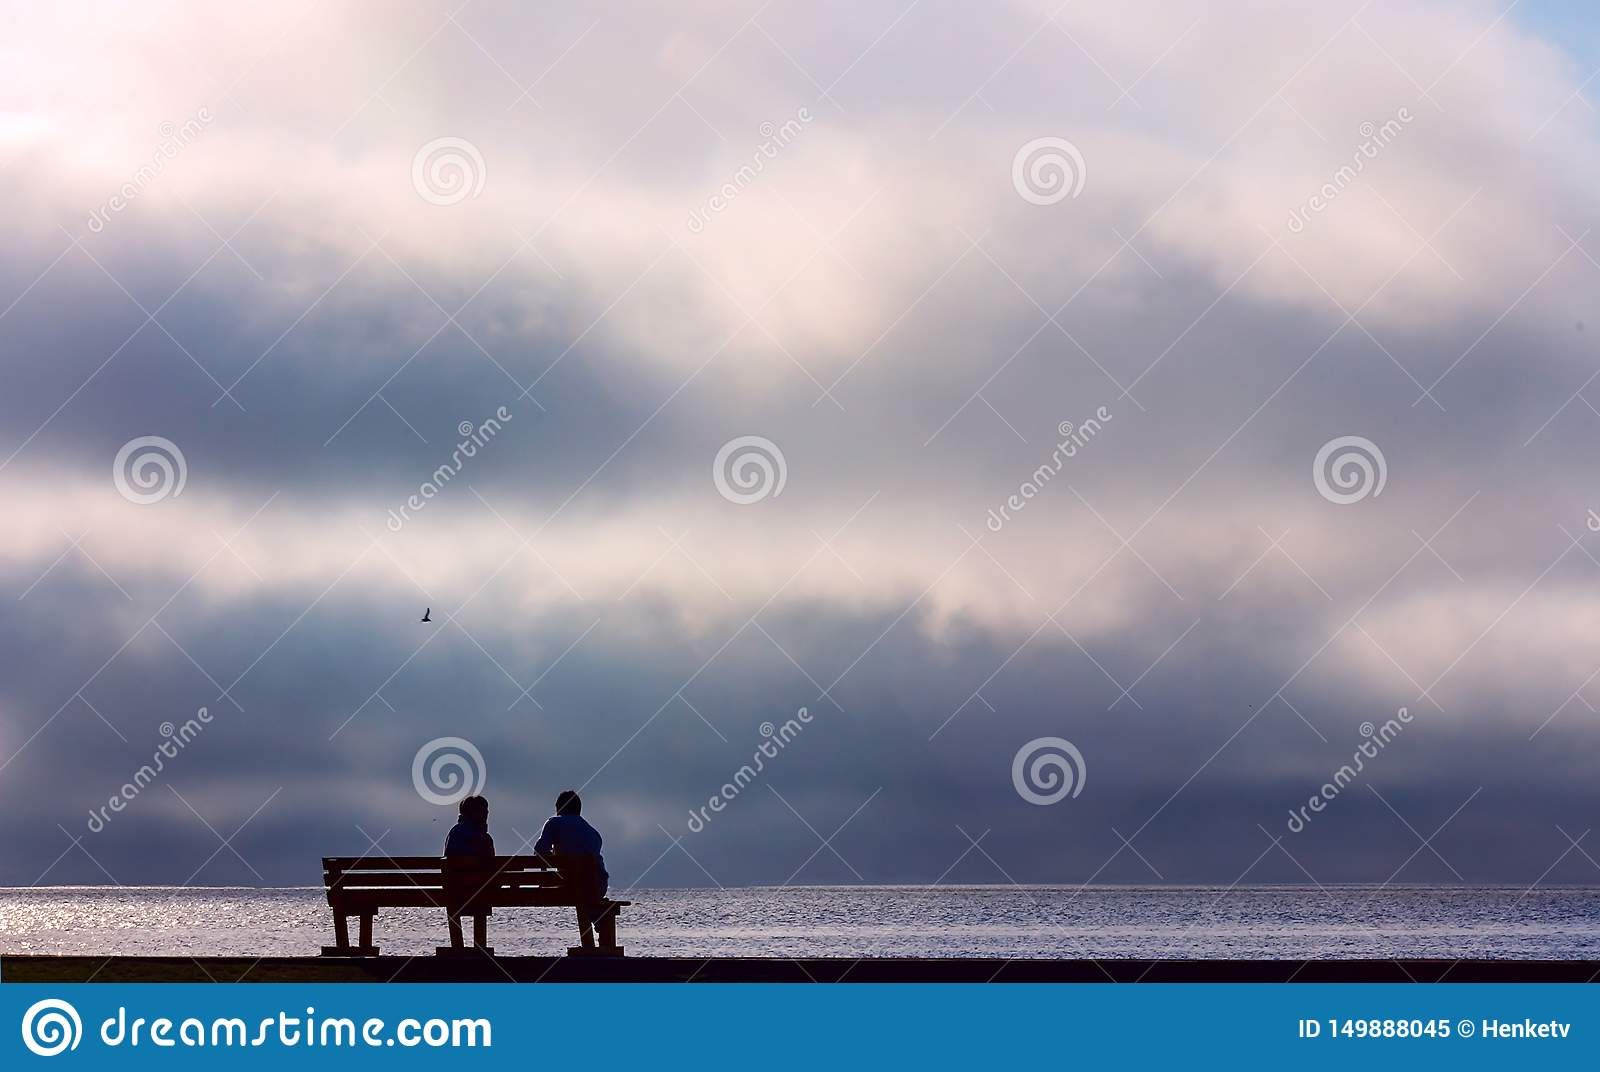 Two people sitting on a street bench and watching the dramatic sunset